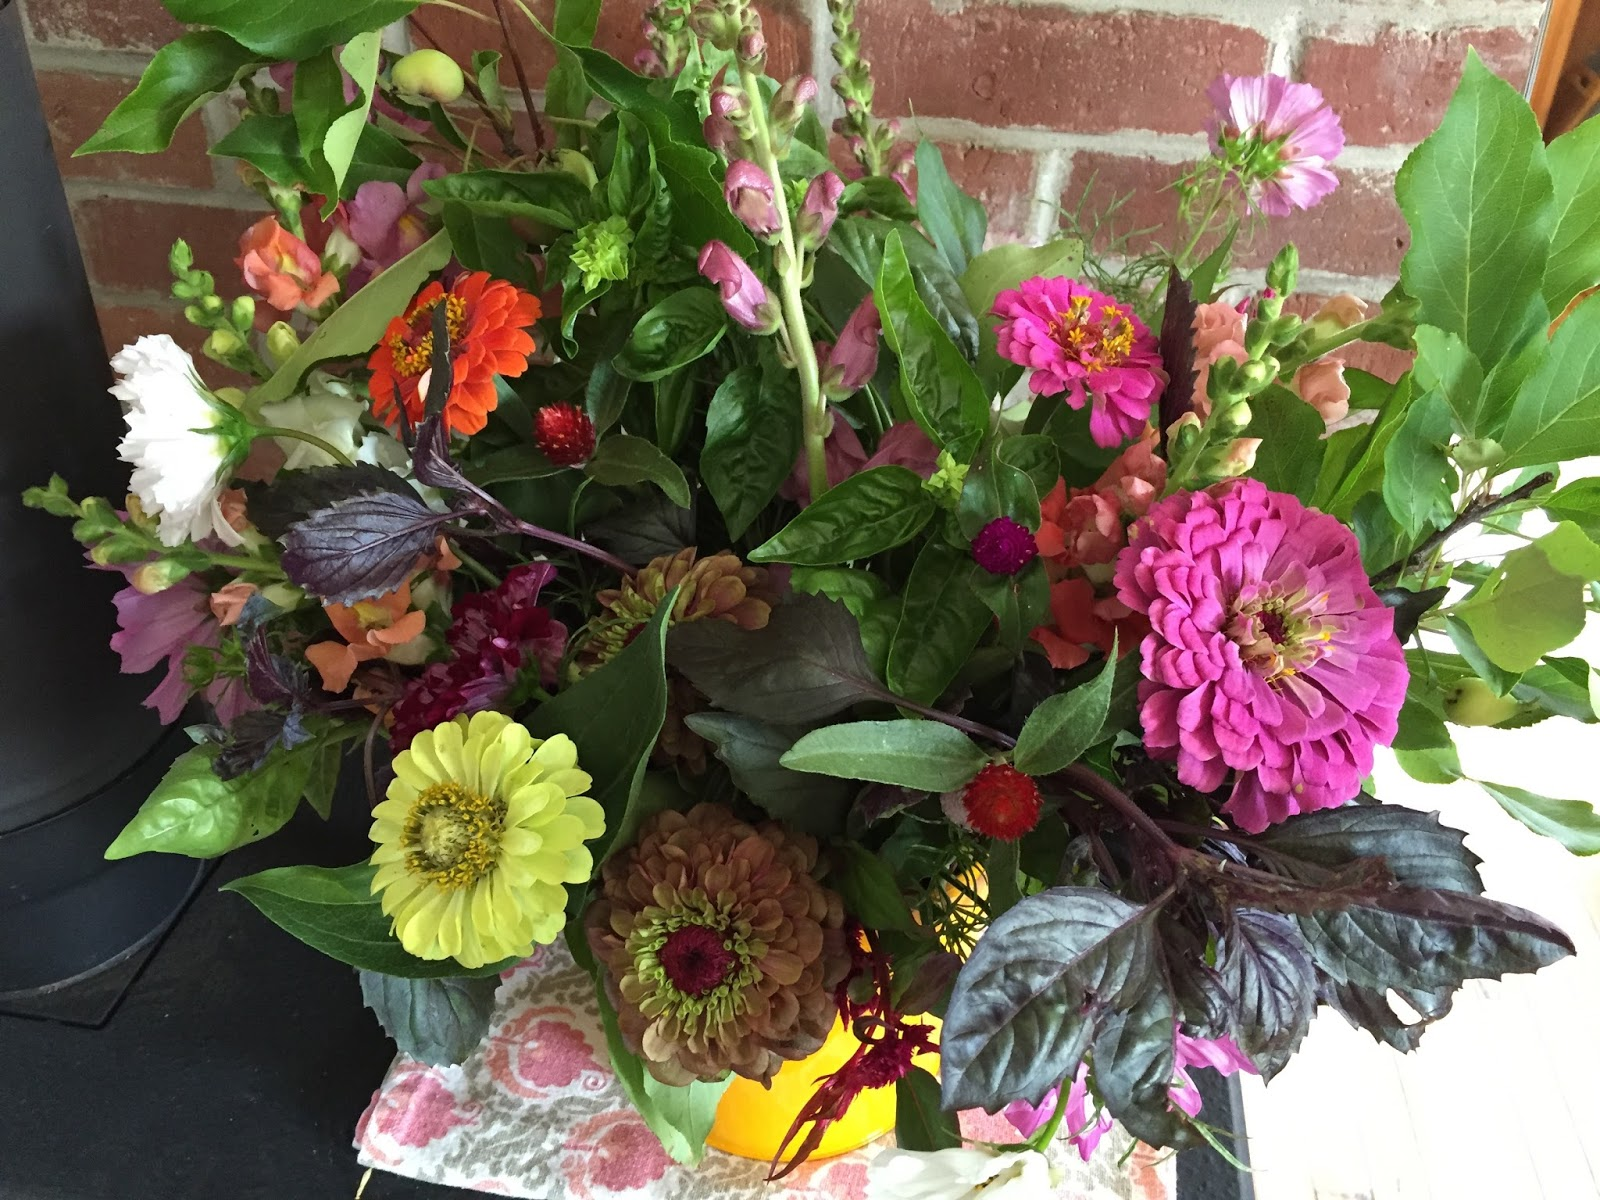 Letters From A Hill Farm Csa Flowers A Birthday And Daylily Season